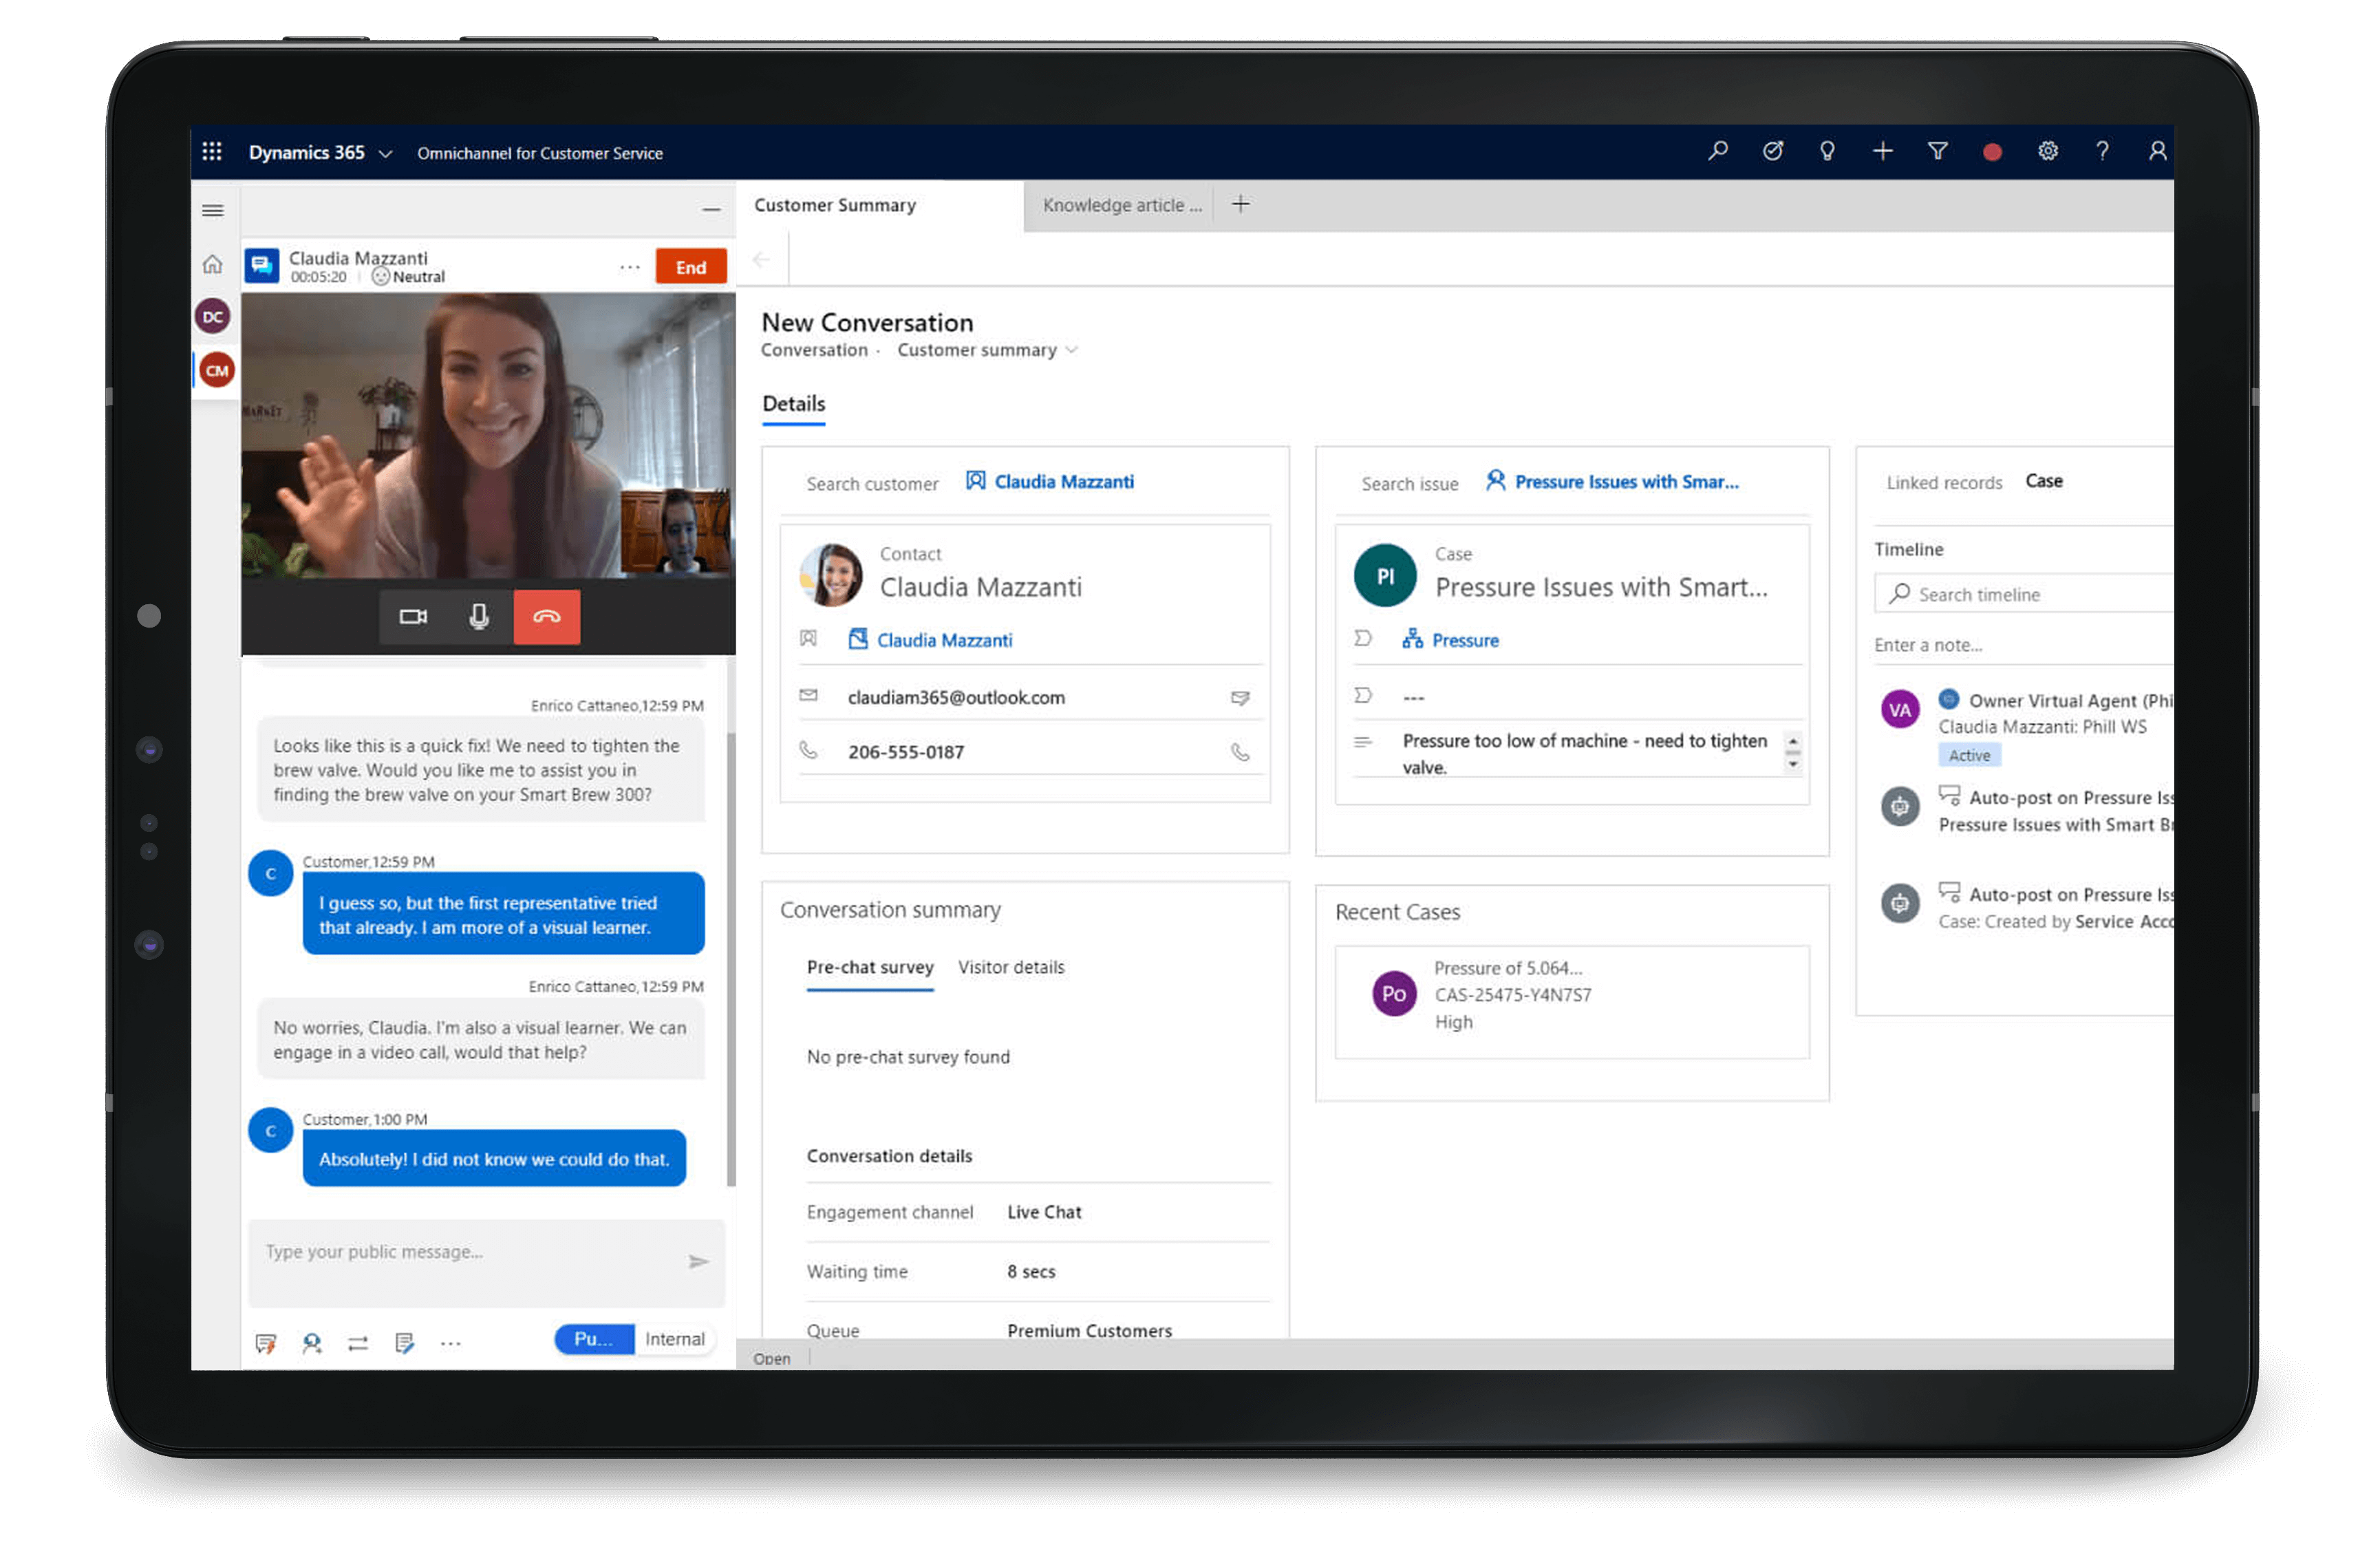 Dynamics 365 Customer Service allows you to interact with customers